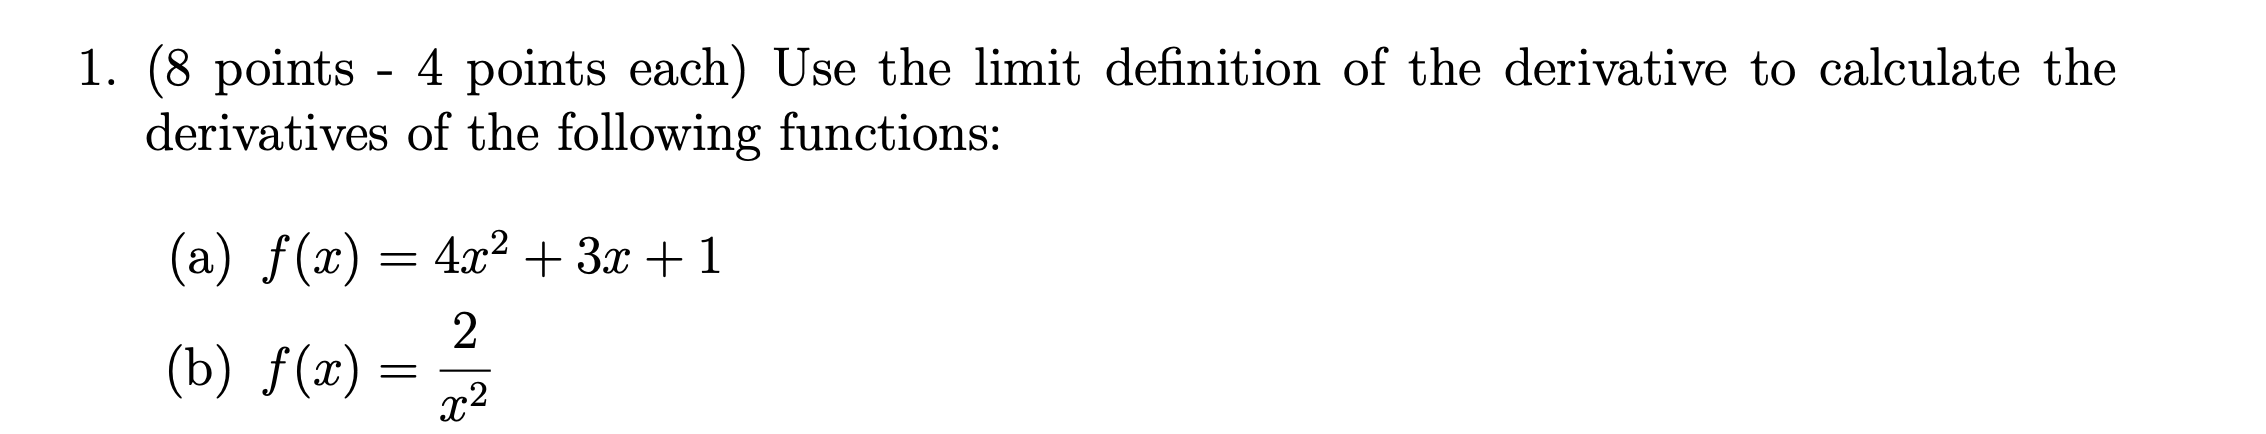 1. (8 points - 4 points each) Use the limit definition of the derivative to calculate the derivatives of the following functi